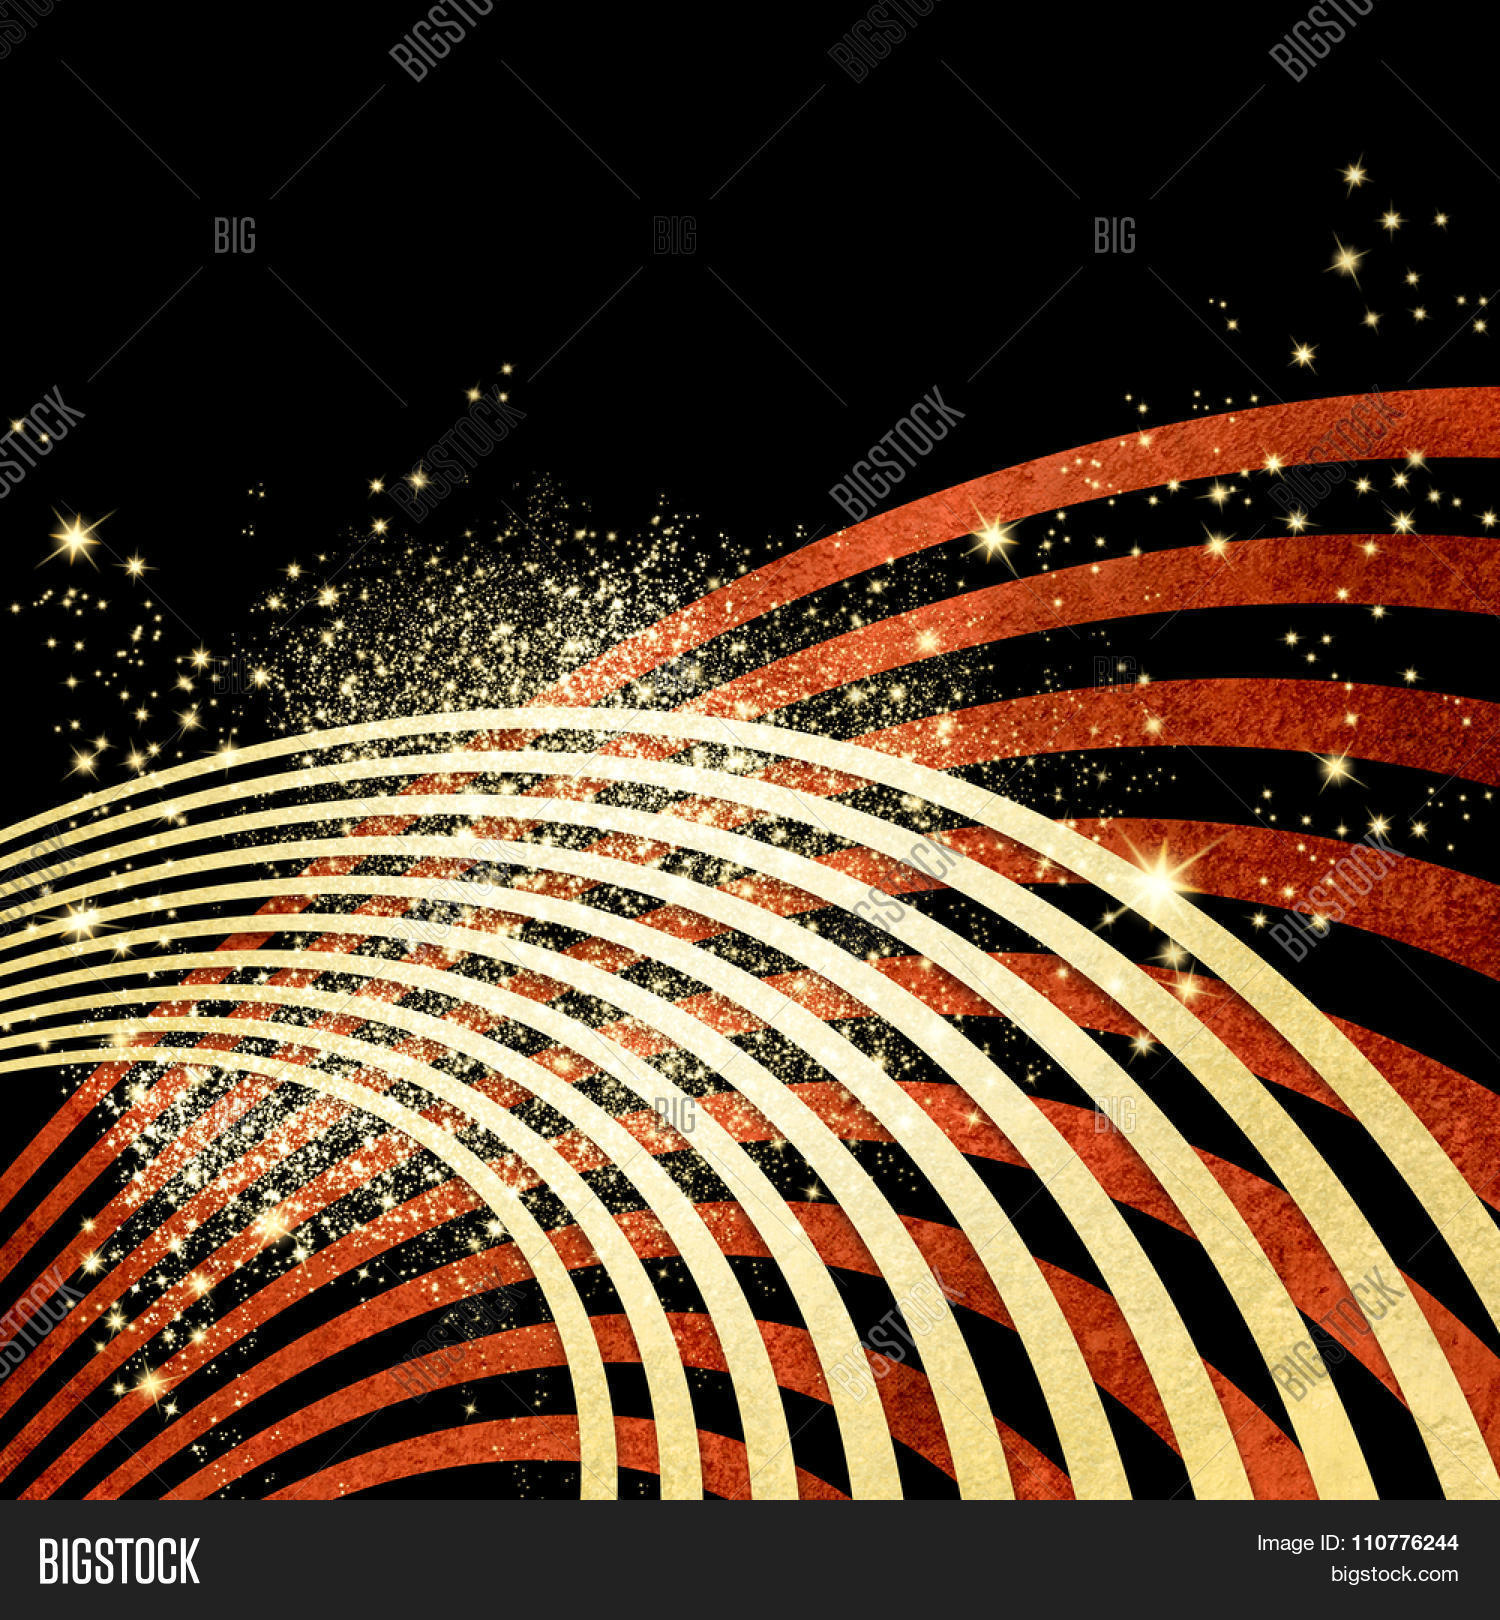 Black Background Red Image Photo Free Trial Bigstock